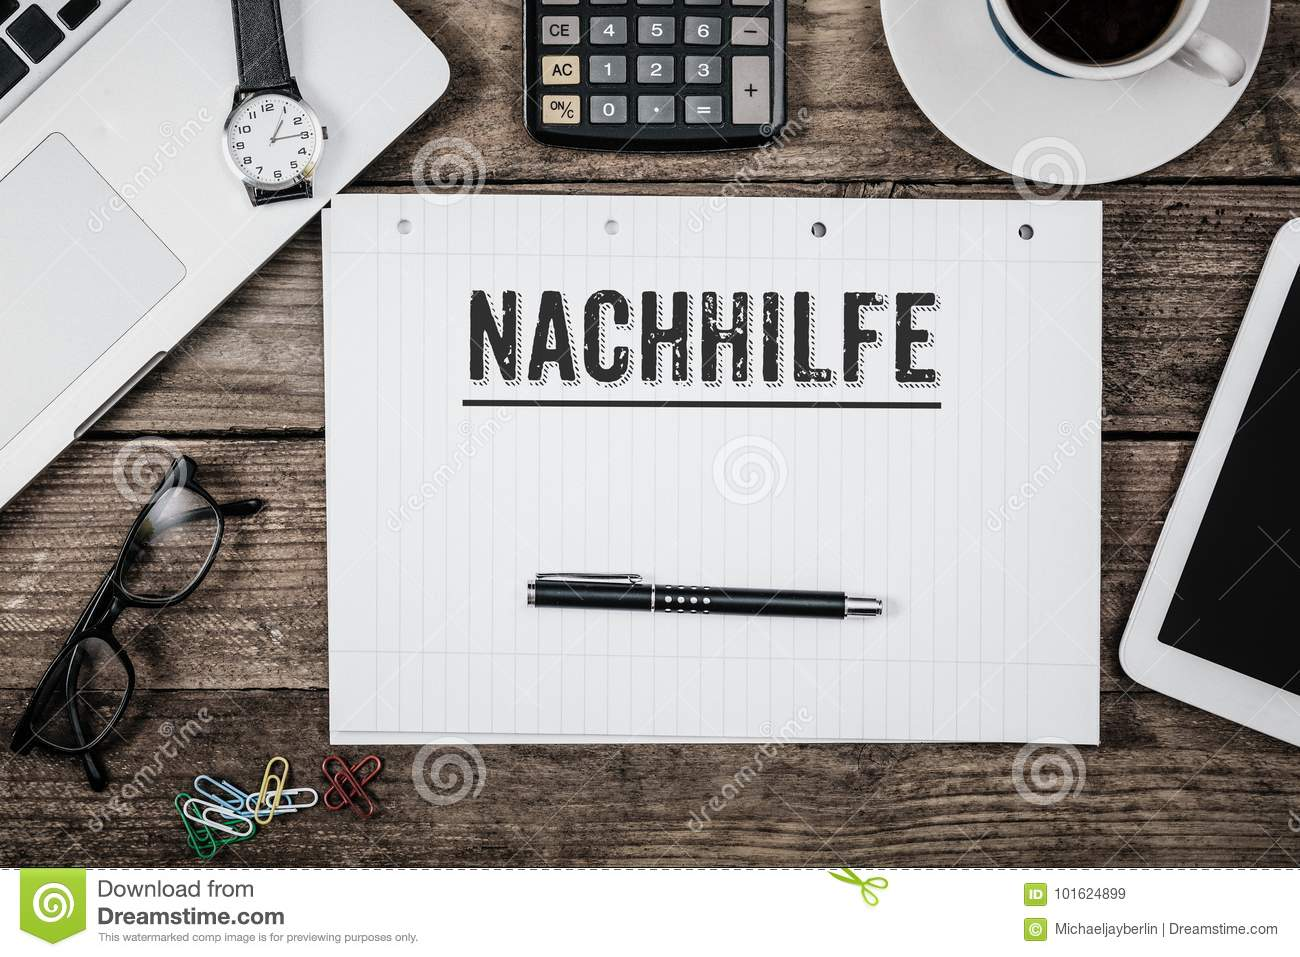 nachhilfe german for private lessons on notepad stock image image 101624899. Black Bedroom Furniture Sets. Home Design Ideas